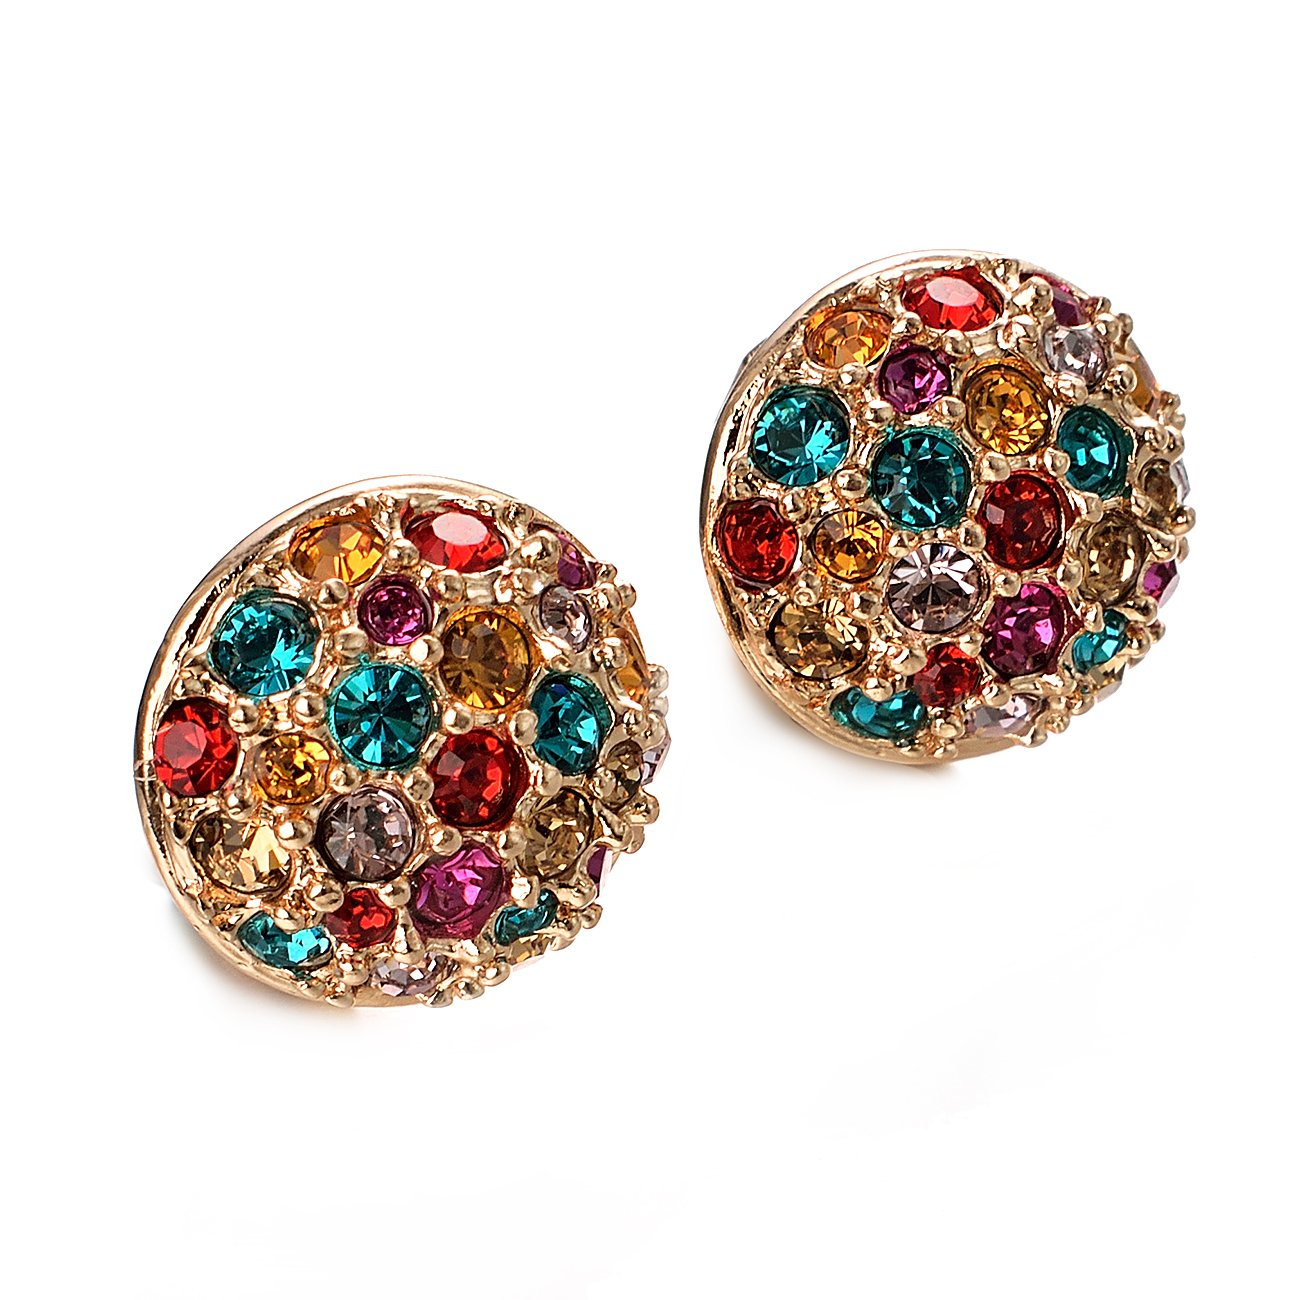 VOGEM Sparkly Clip On Earrings For Women 18K Gold Plated Round Austrian Crystal Statement Cluster Costume Earrings Clip On